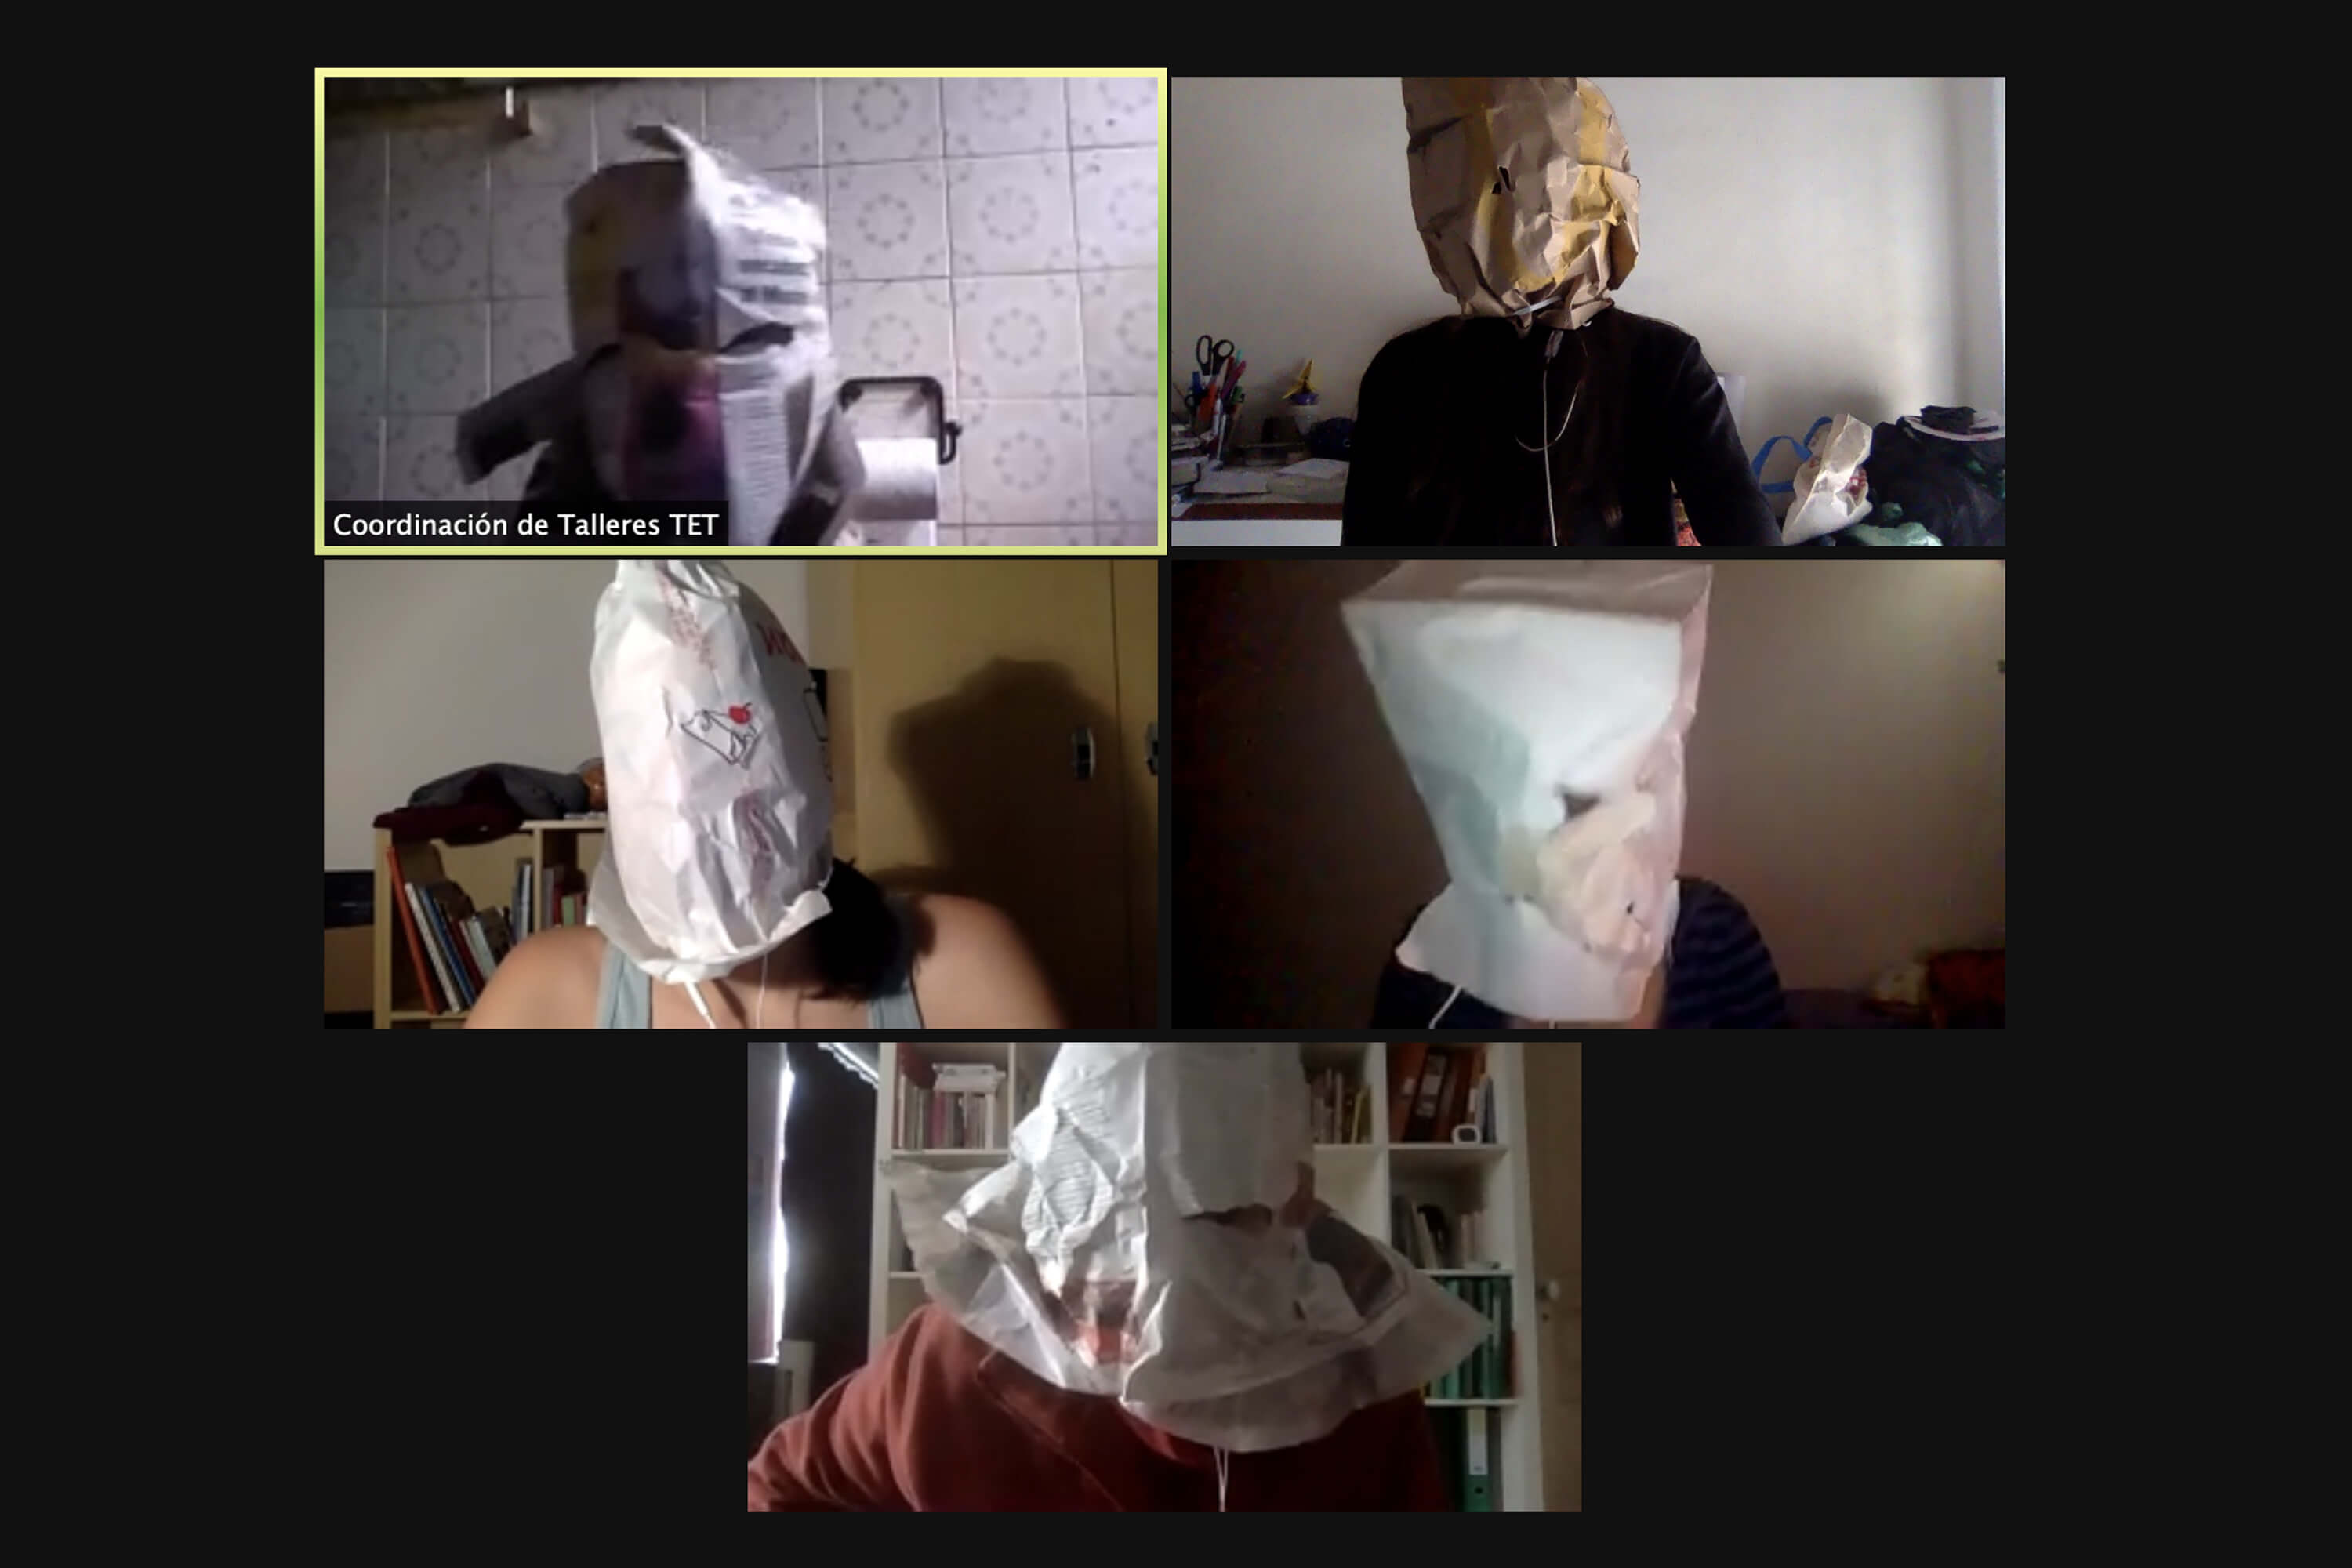 _: Five people with paper bags on their heads are attending a video conference.